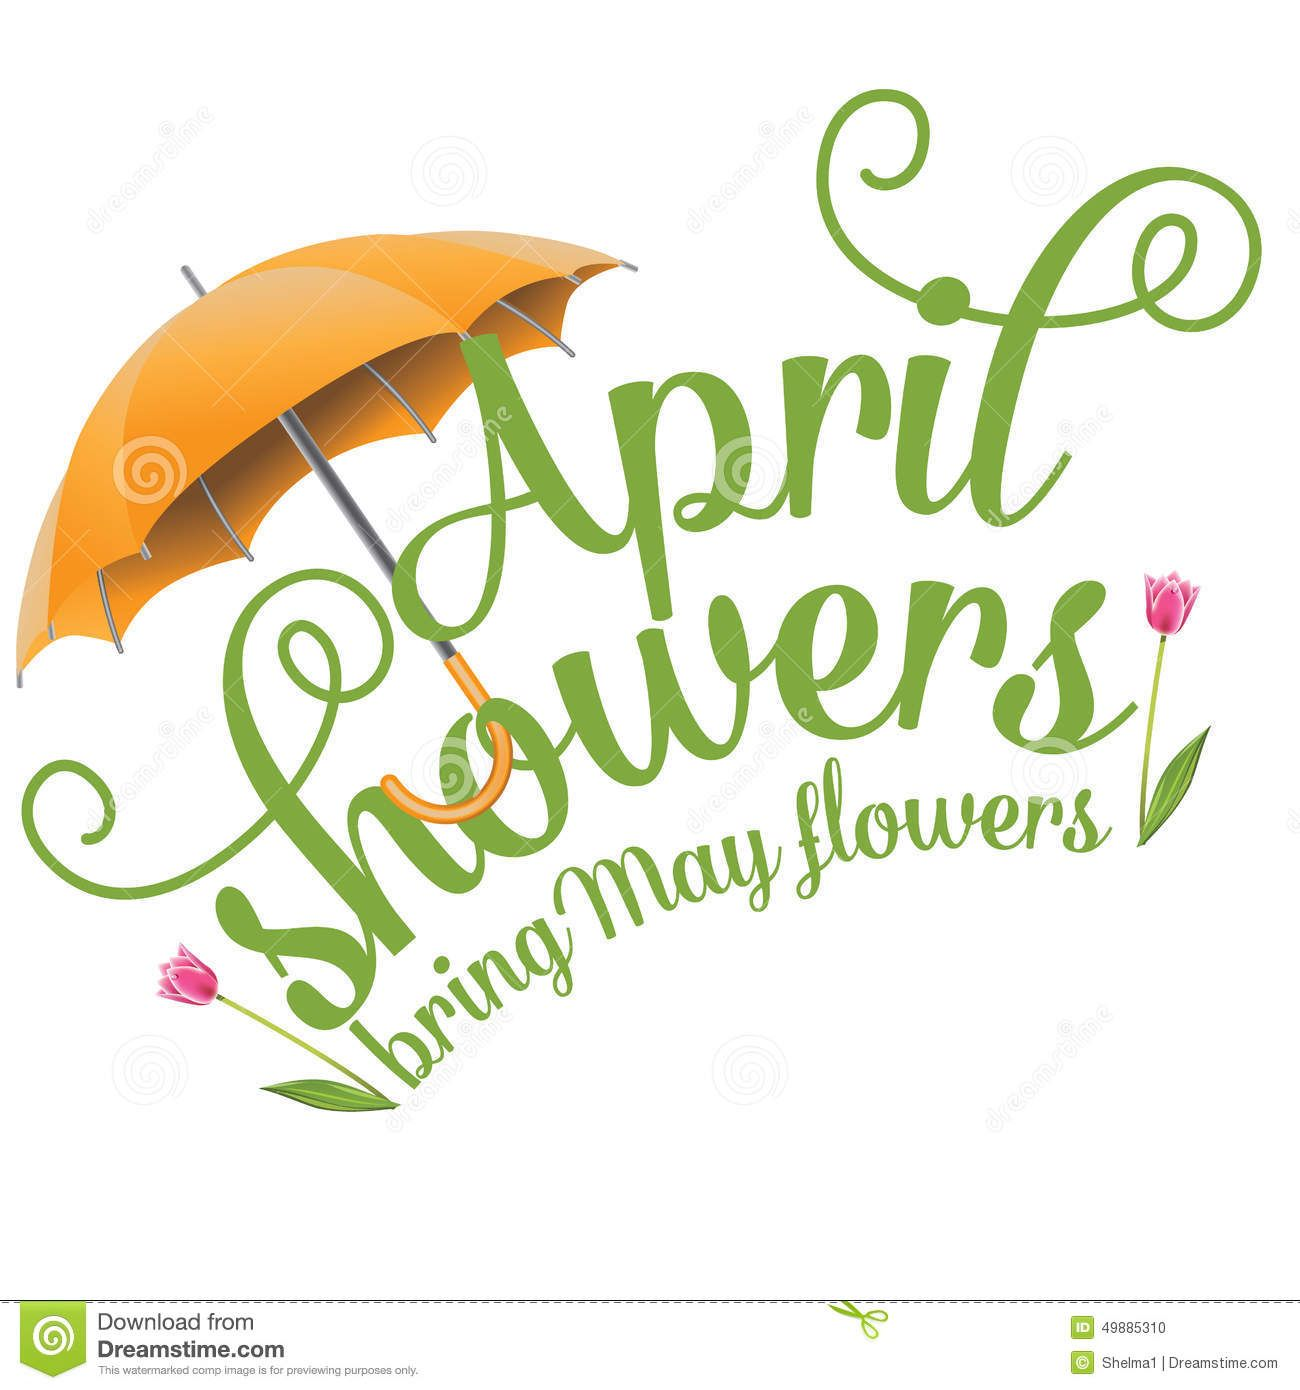 April shower clipart svg free stock April Clip Art | April Showers Bring May Flowers Design Stock Vector ... svg free stock